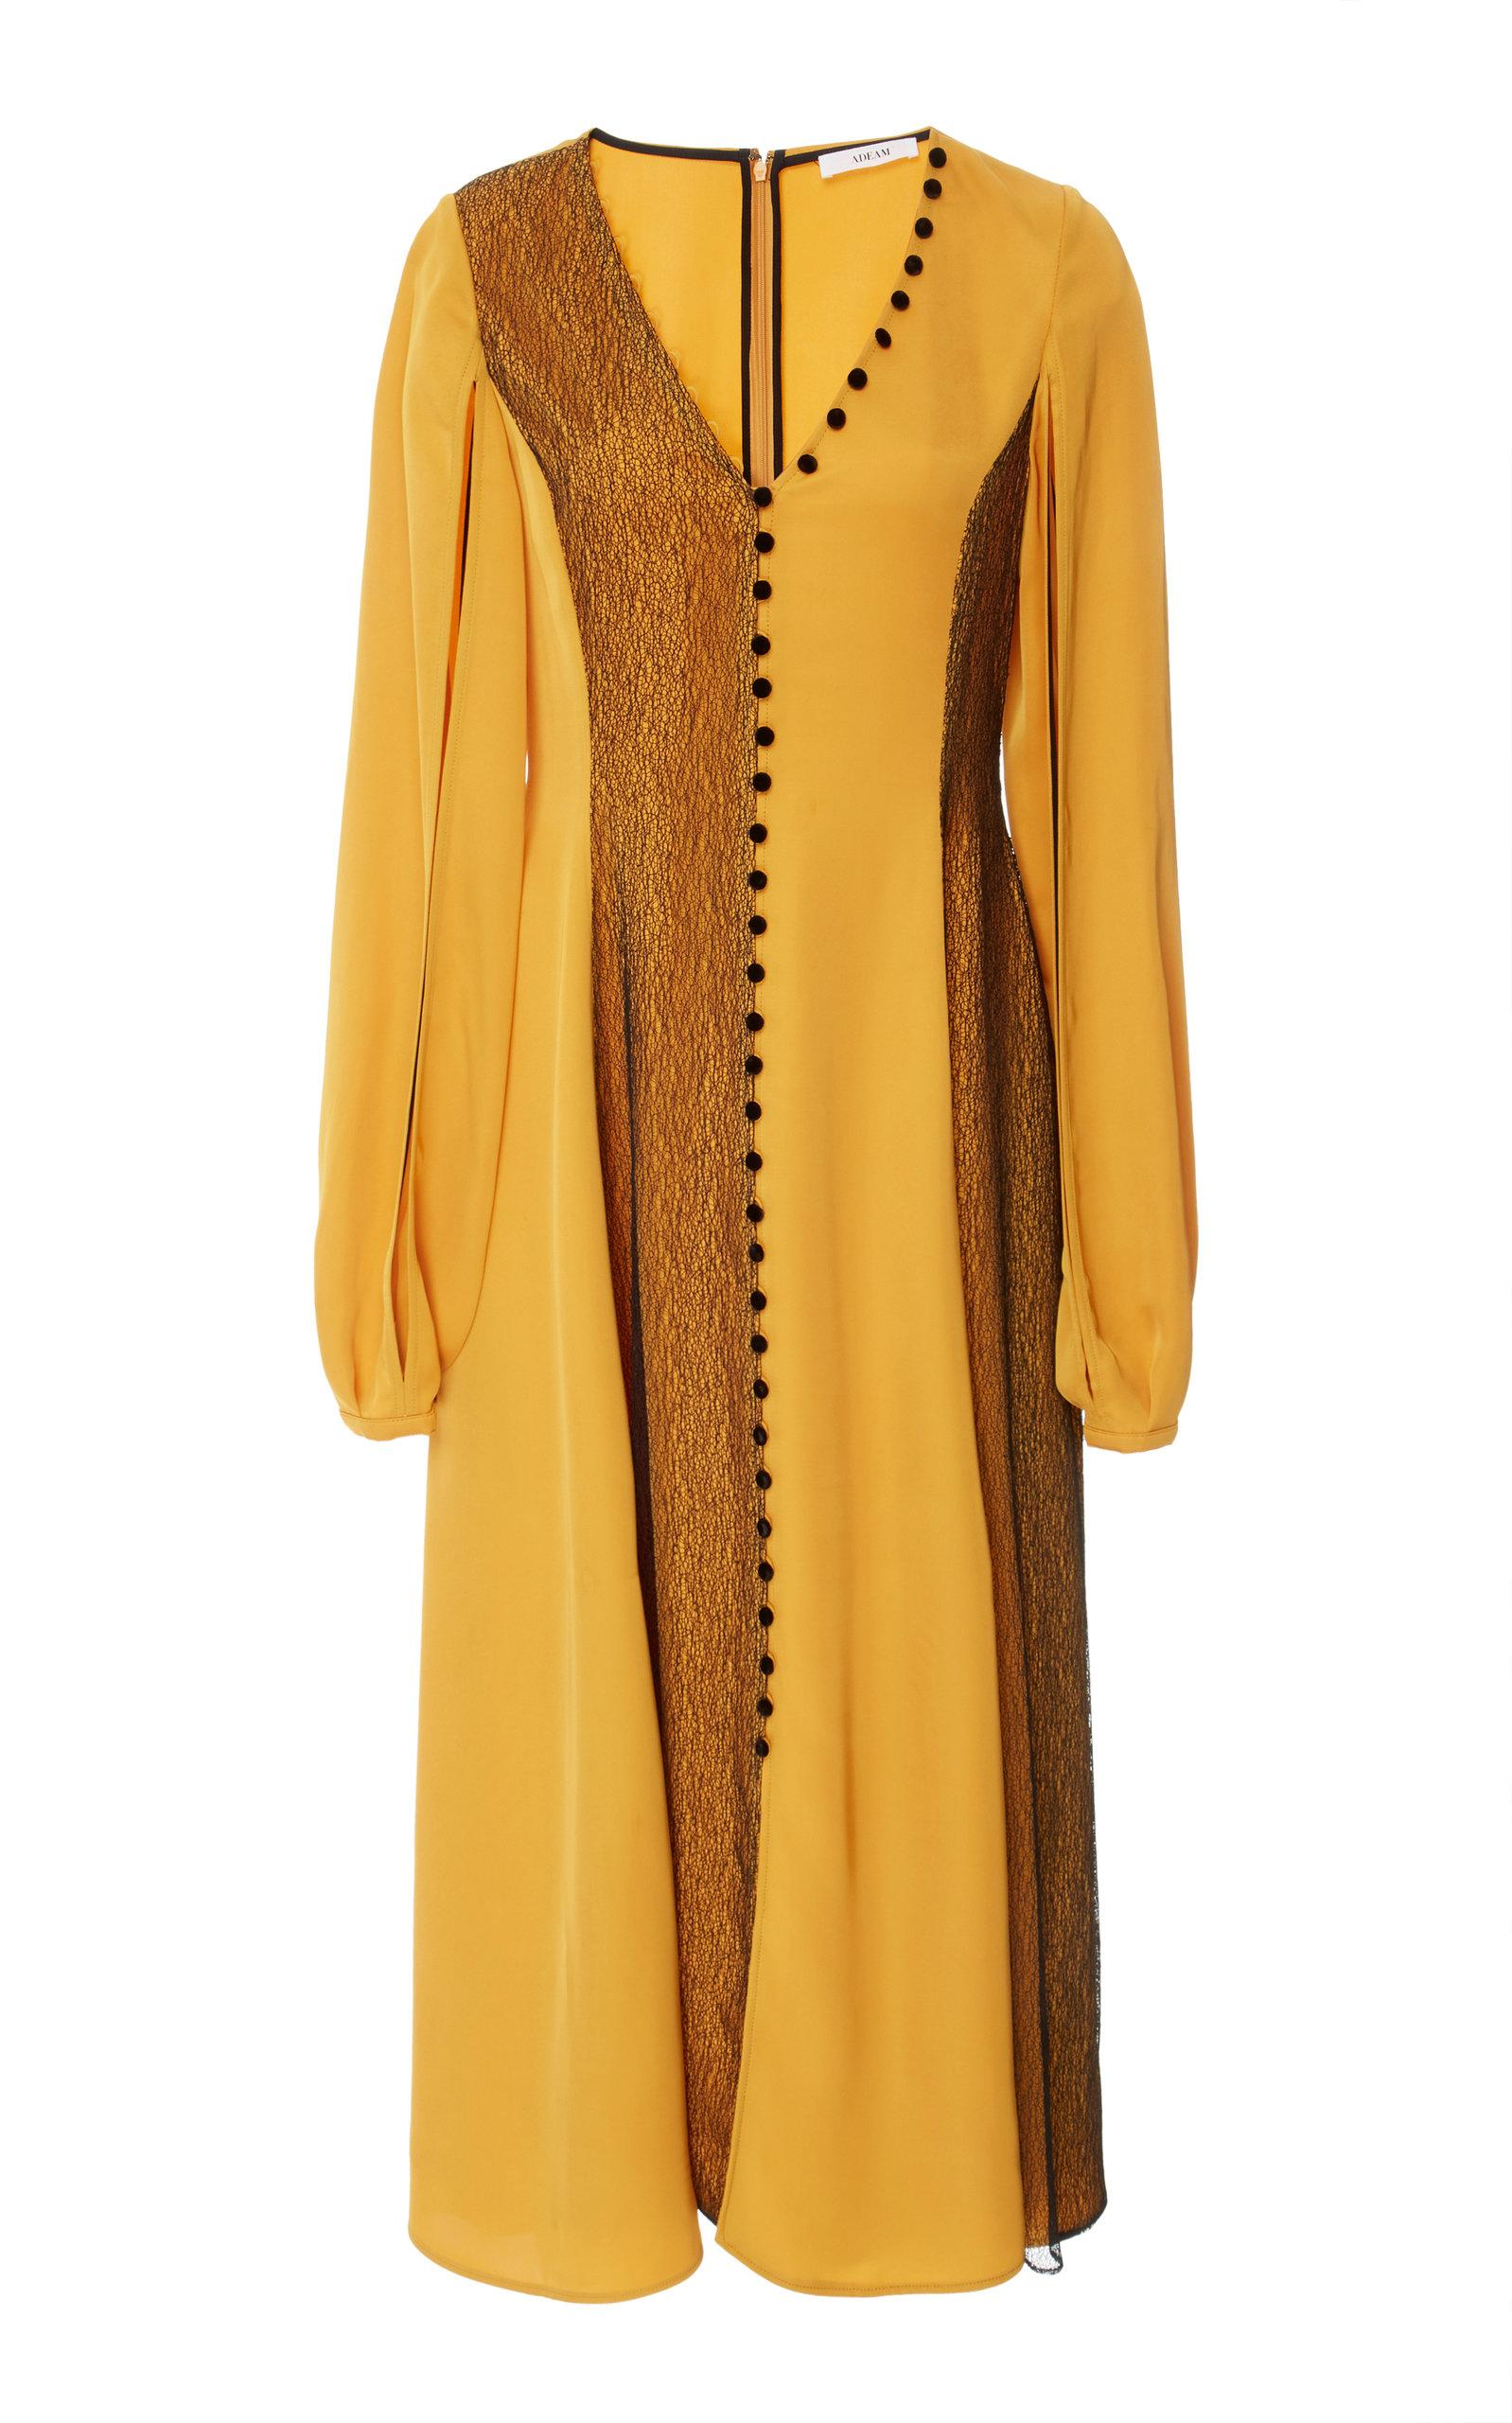 Adeam Lace Buttoned V-neck Dress In Yellow